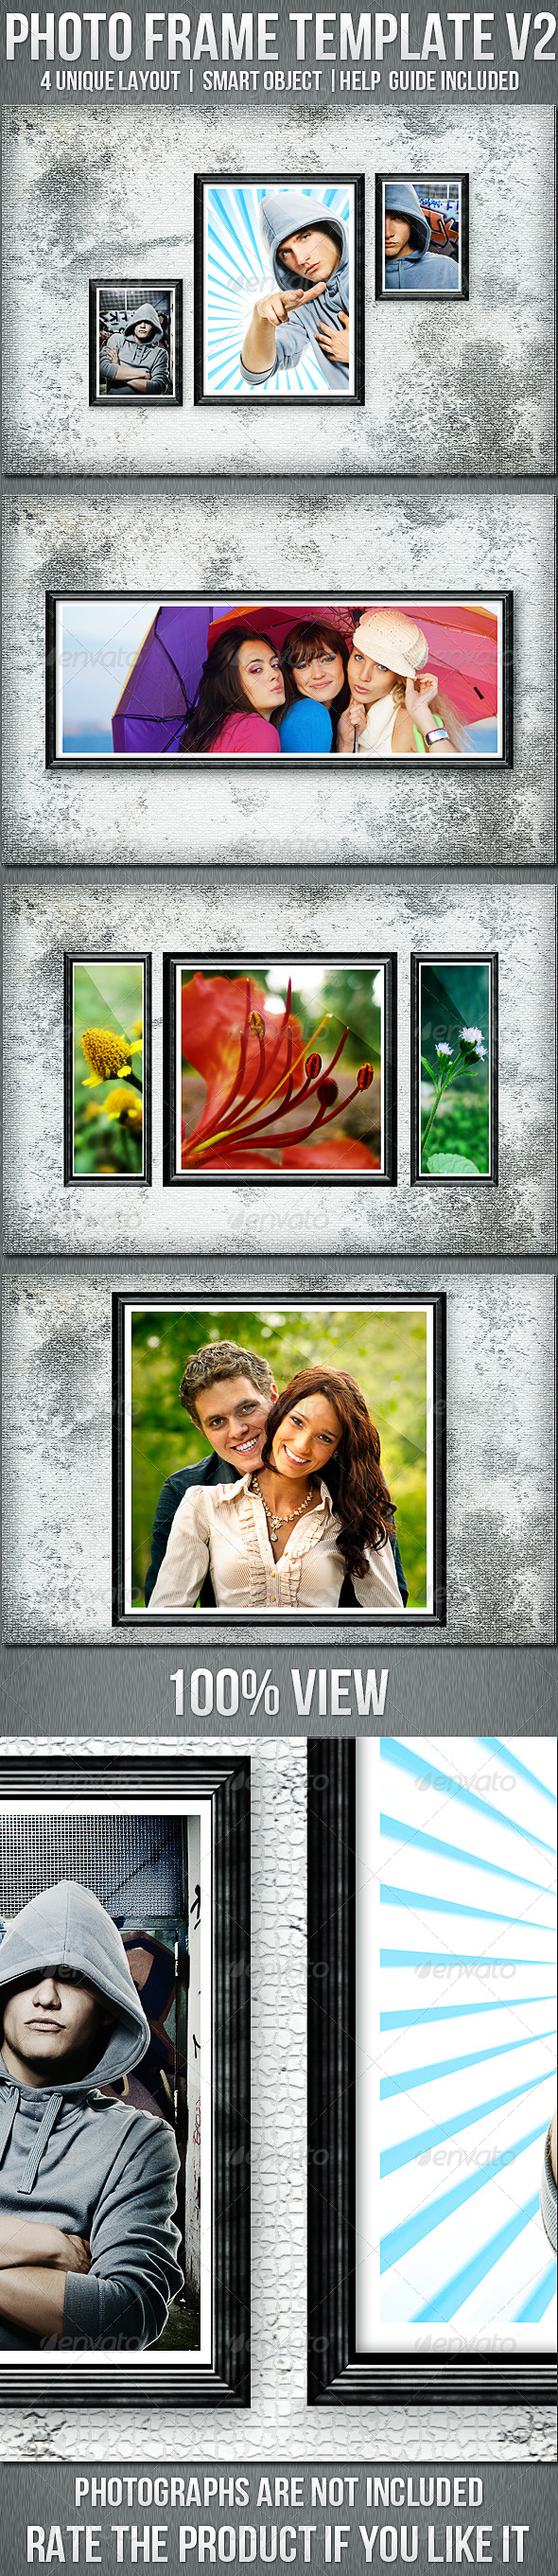 GraphicRiver Photo Frame Templates V2 5062844